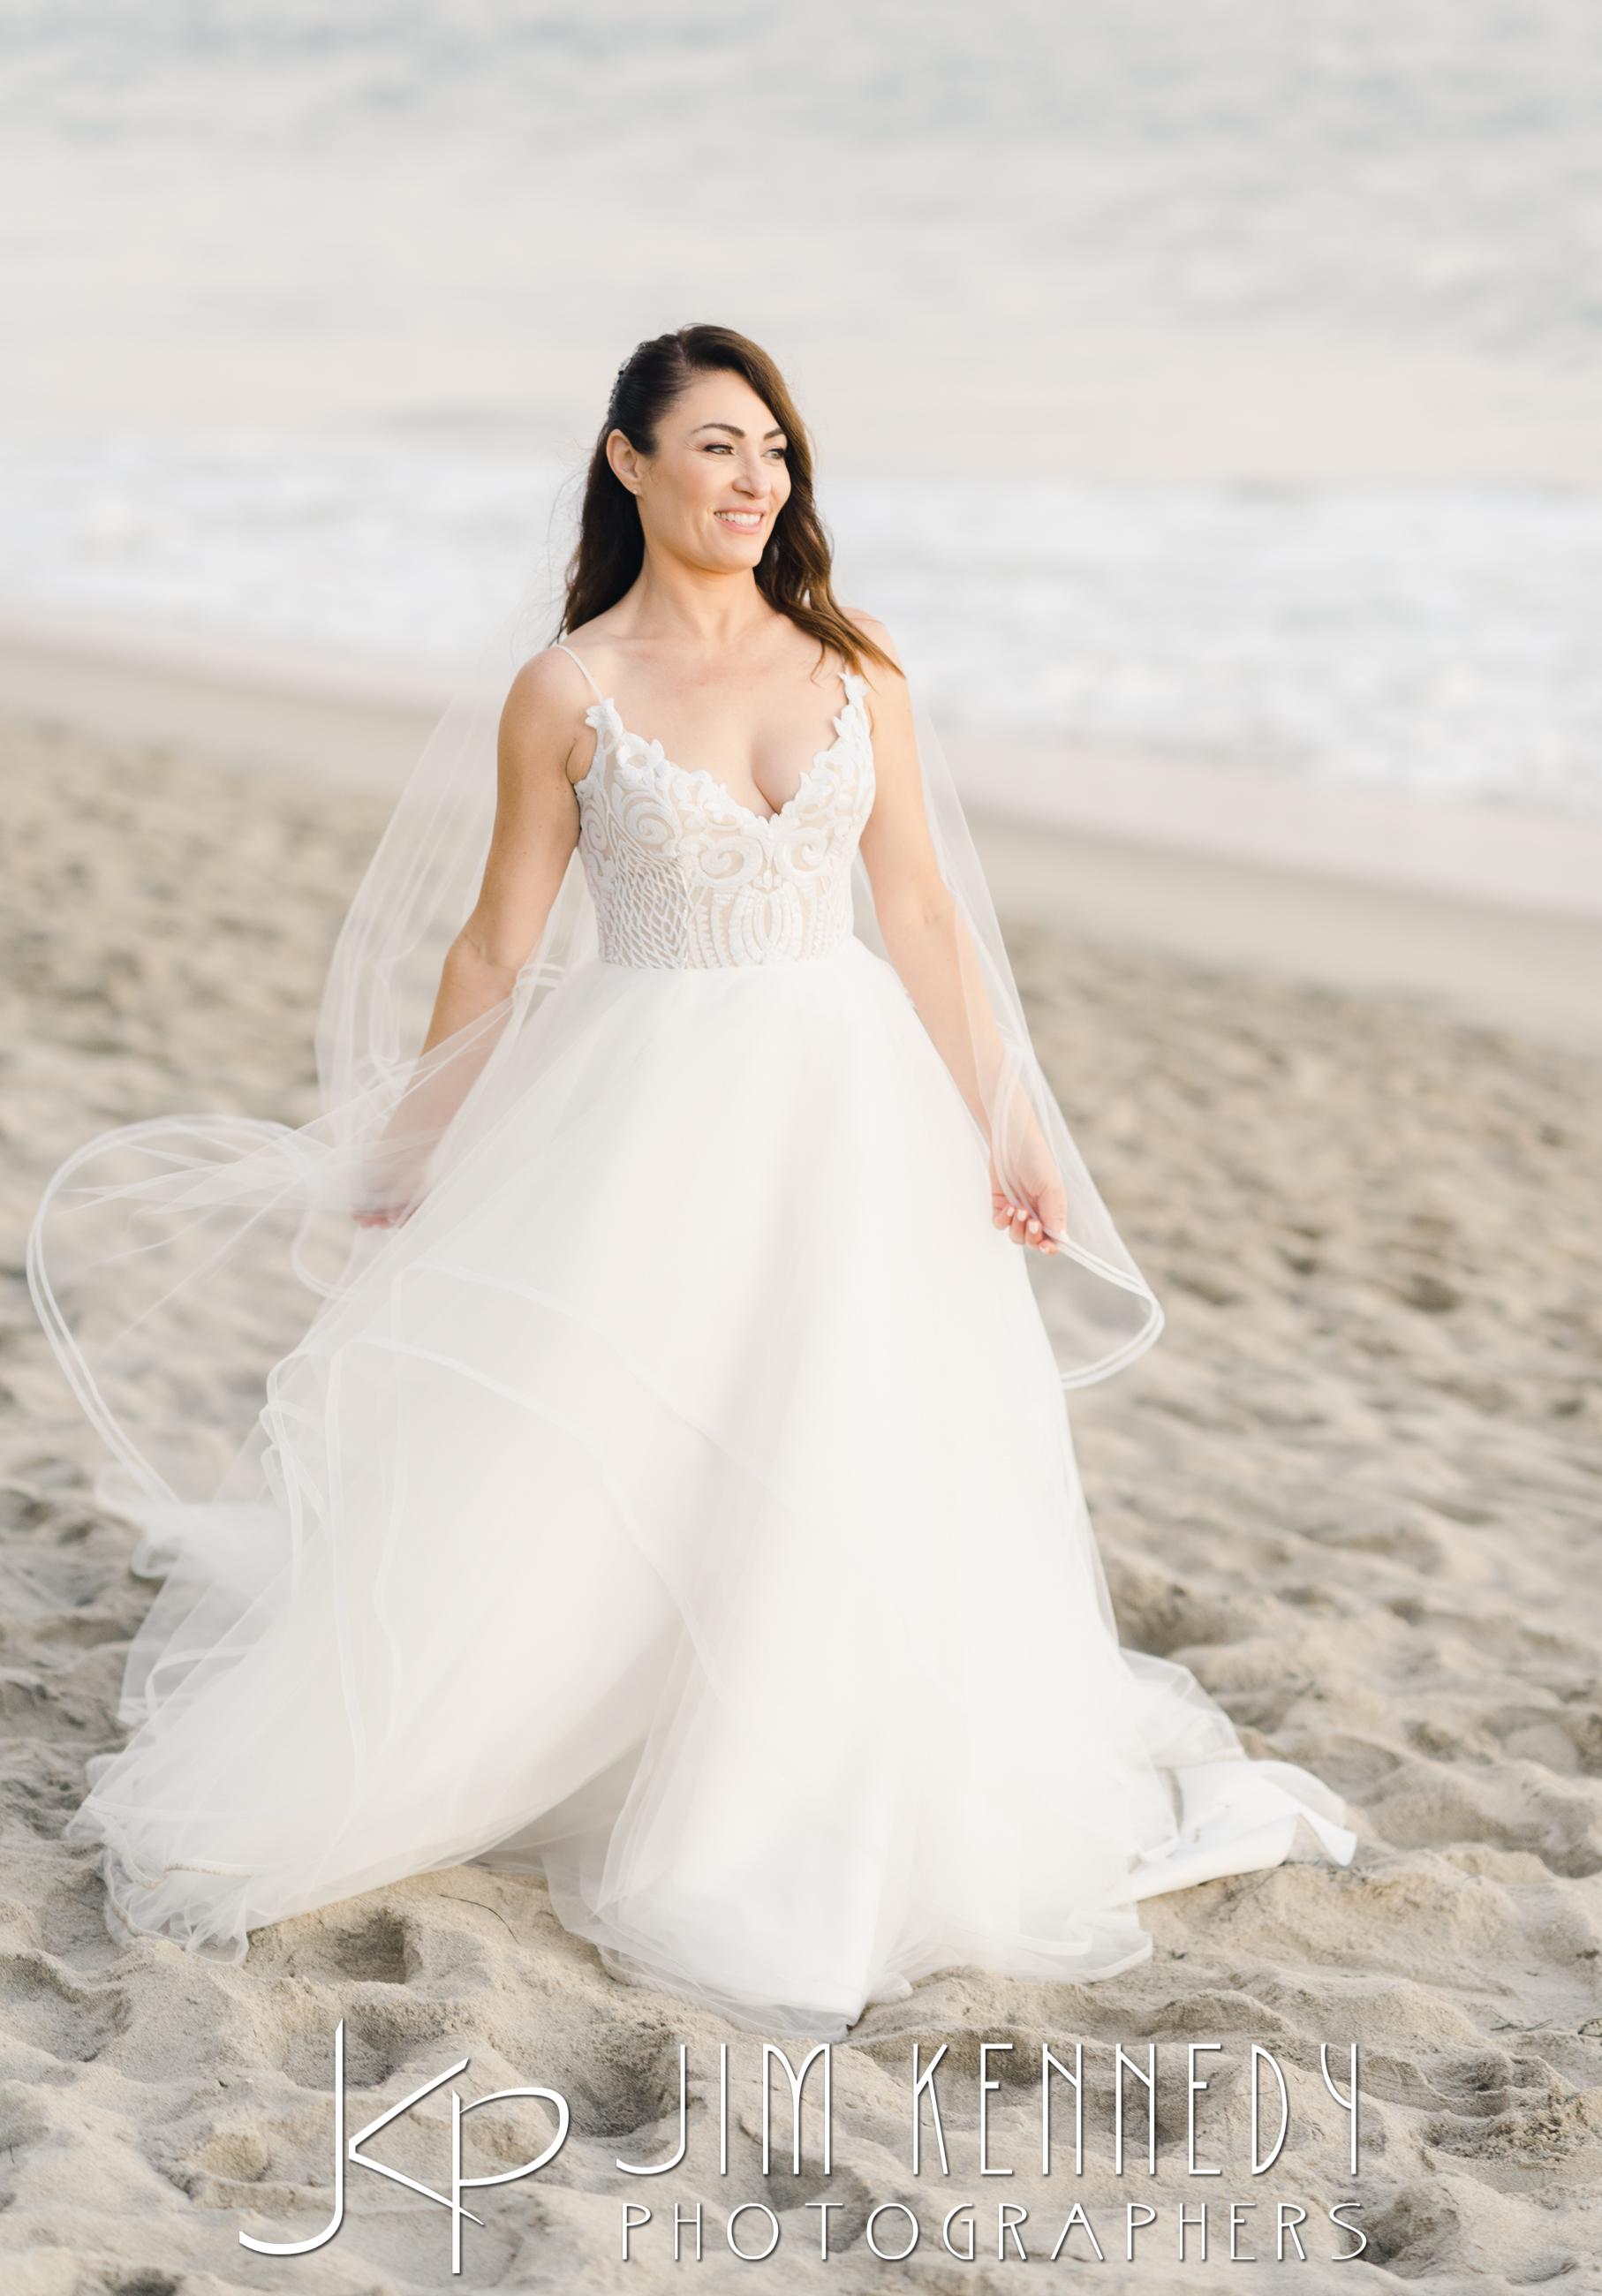 surf-and-sand-resort-wedding-erica-glenn_0209.JPG